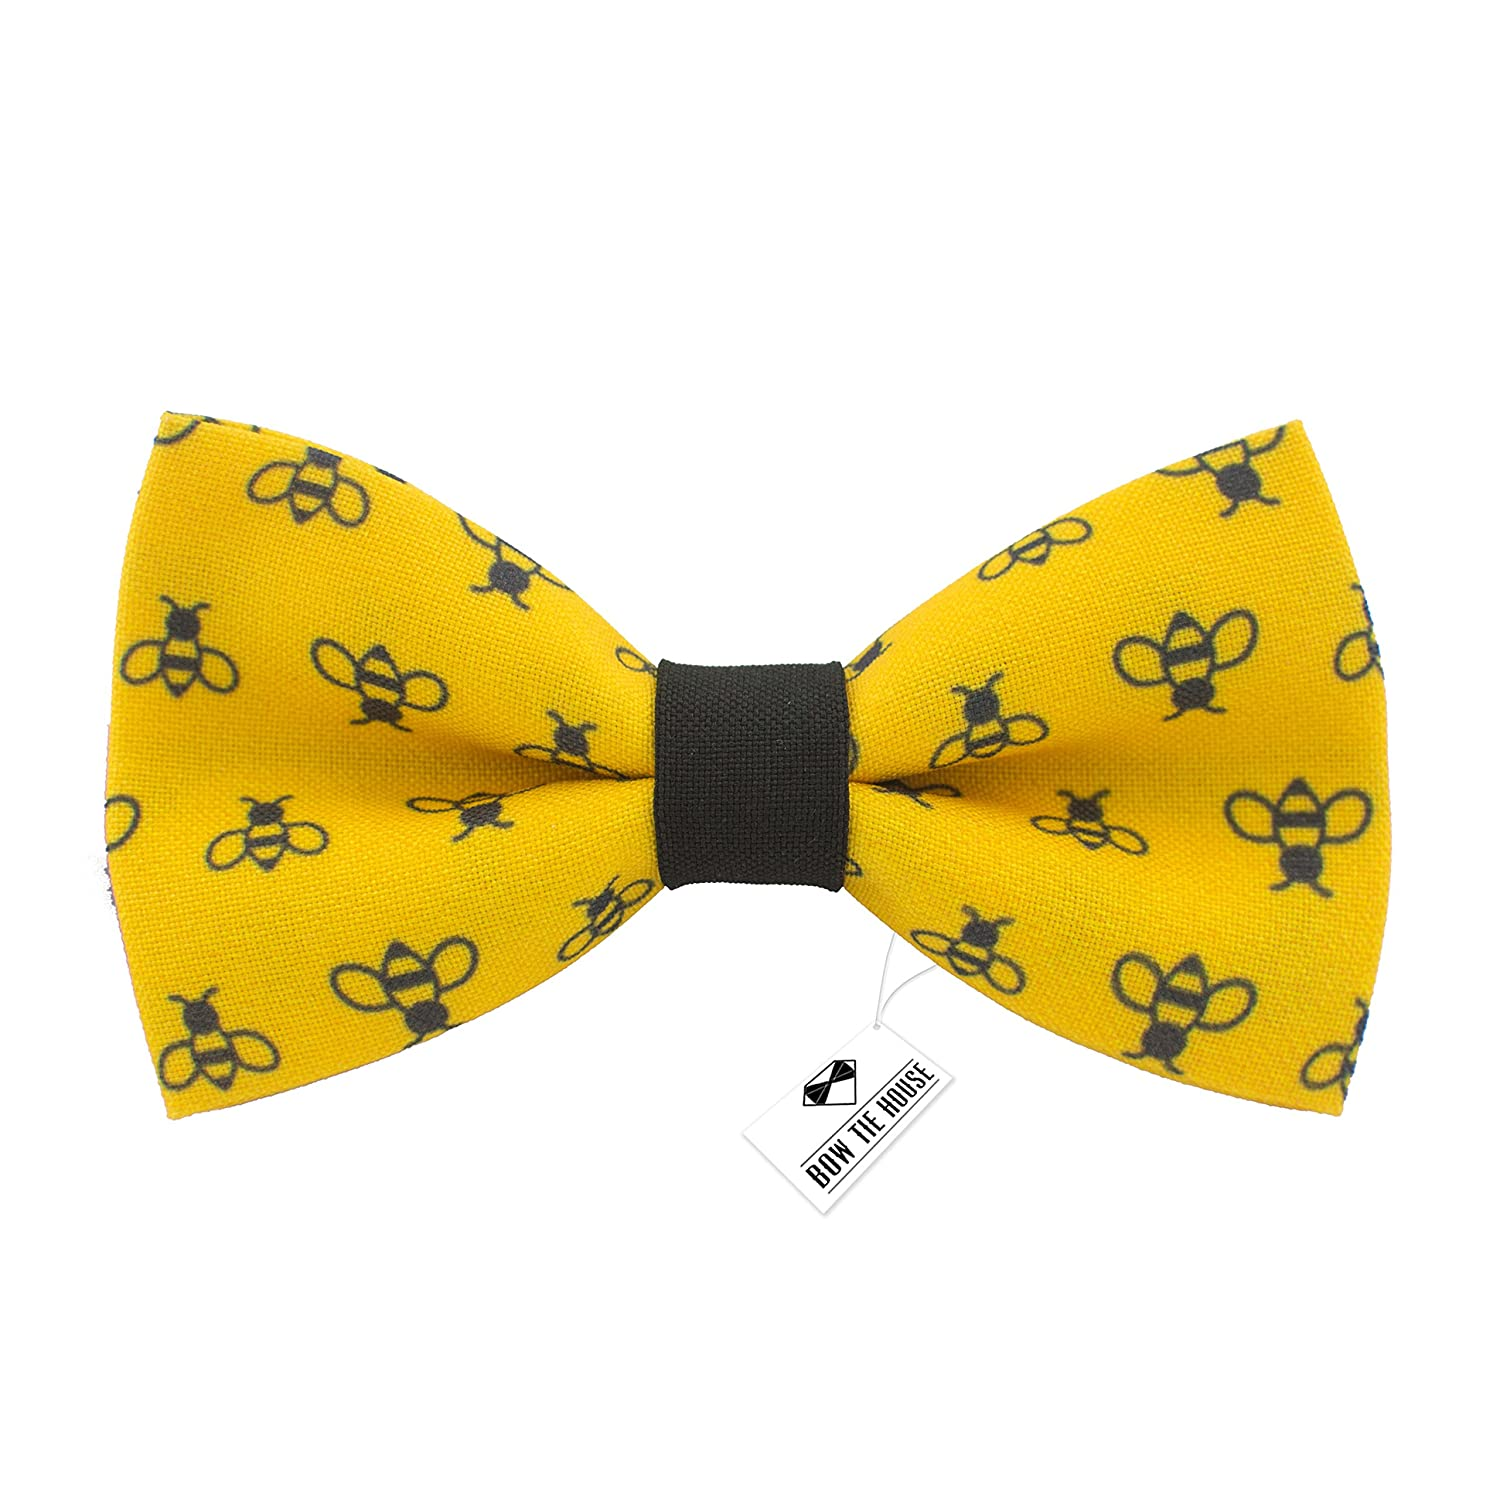 37a9ea7cbaba 100% gabardine. Made in Europe Hand wash only. Emphasize your individuality  and singularity. Handmade bow tie bee pattern. Easy adjustable pre-tied  hand ...